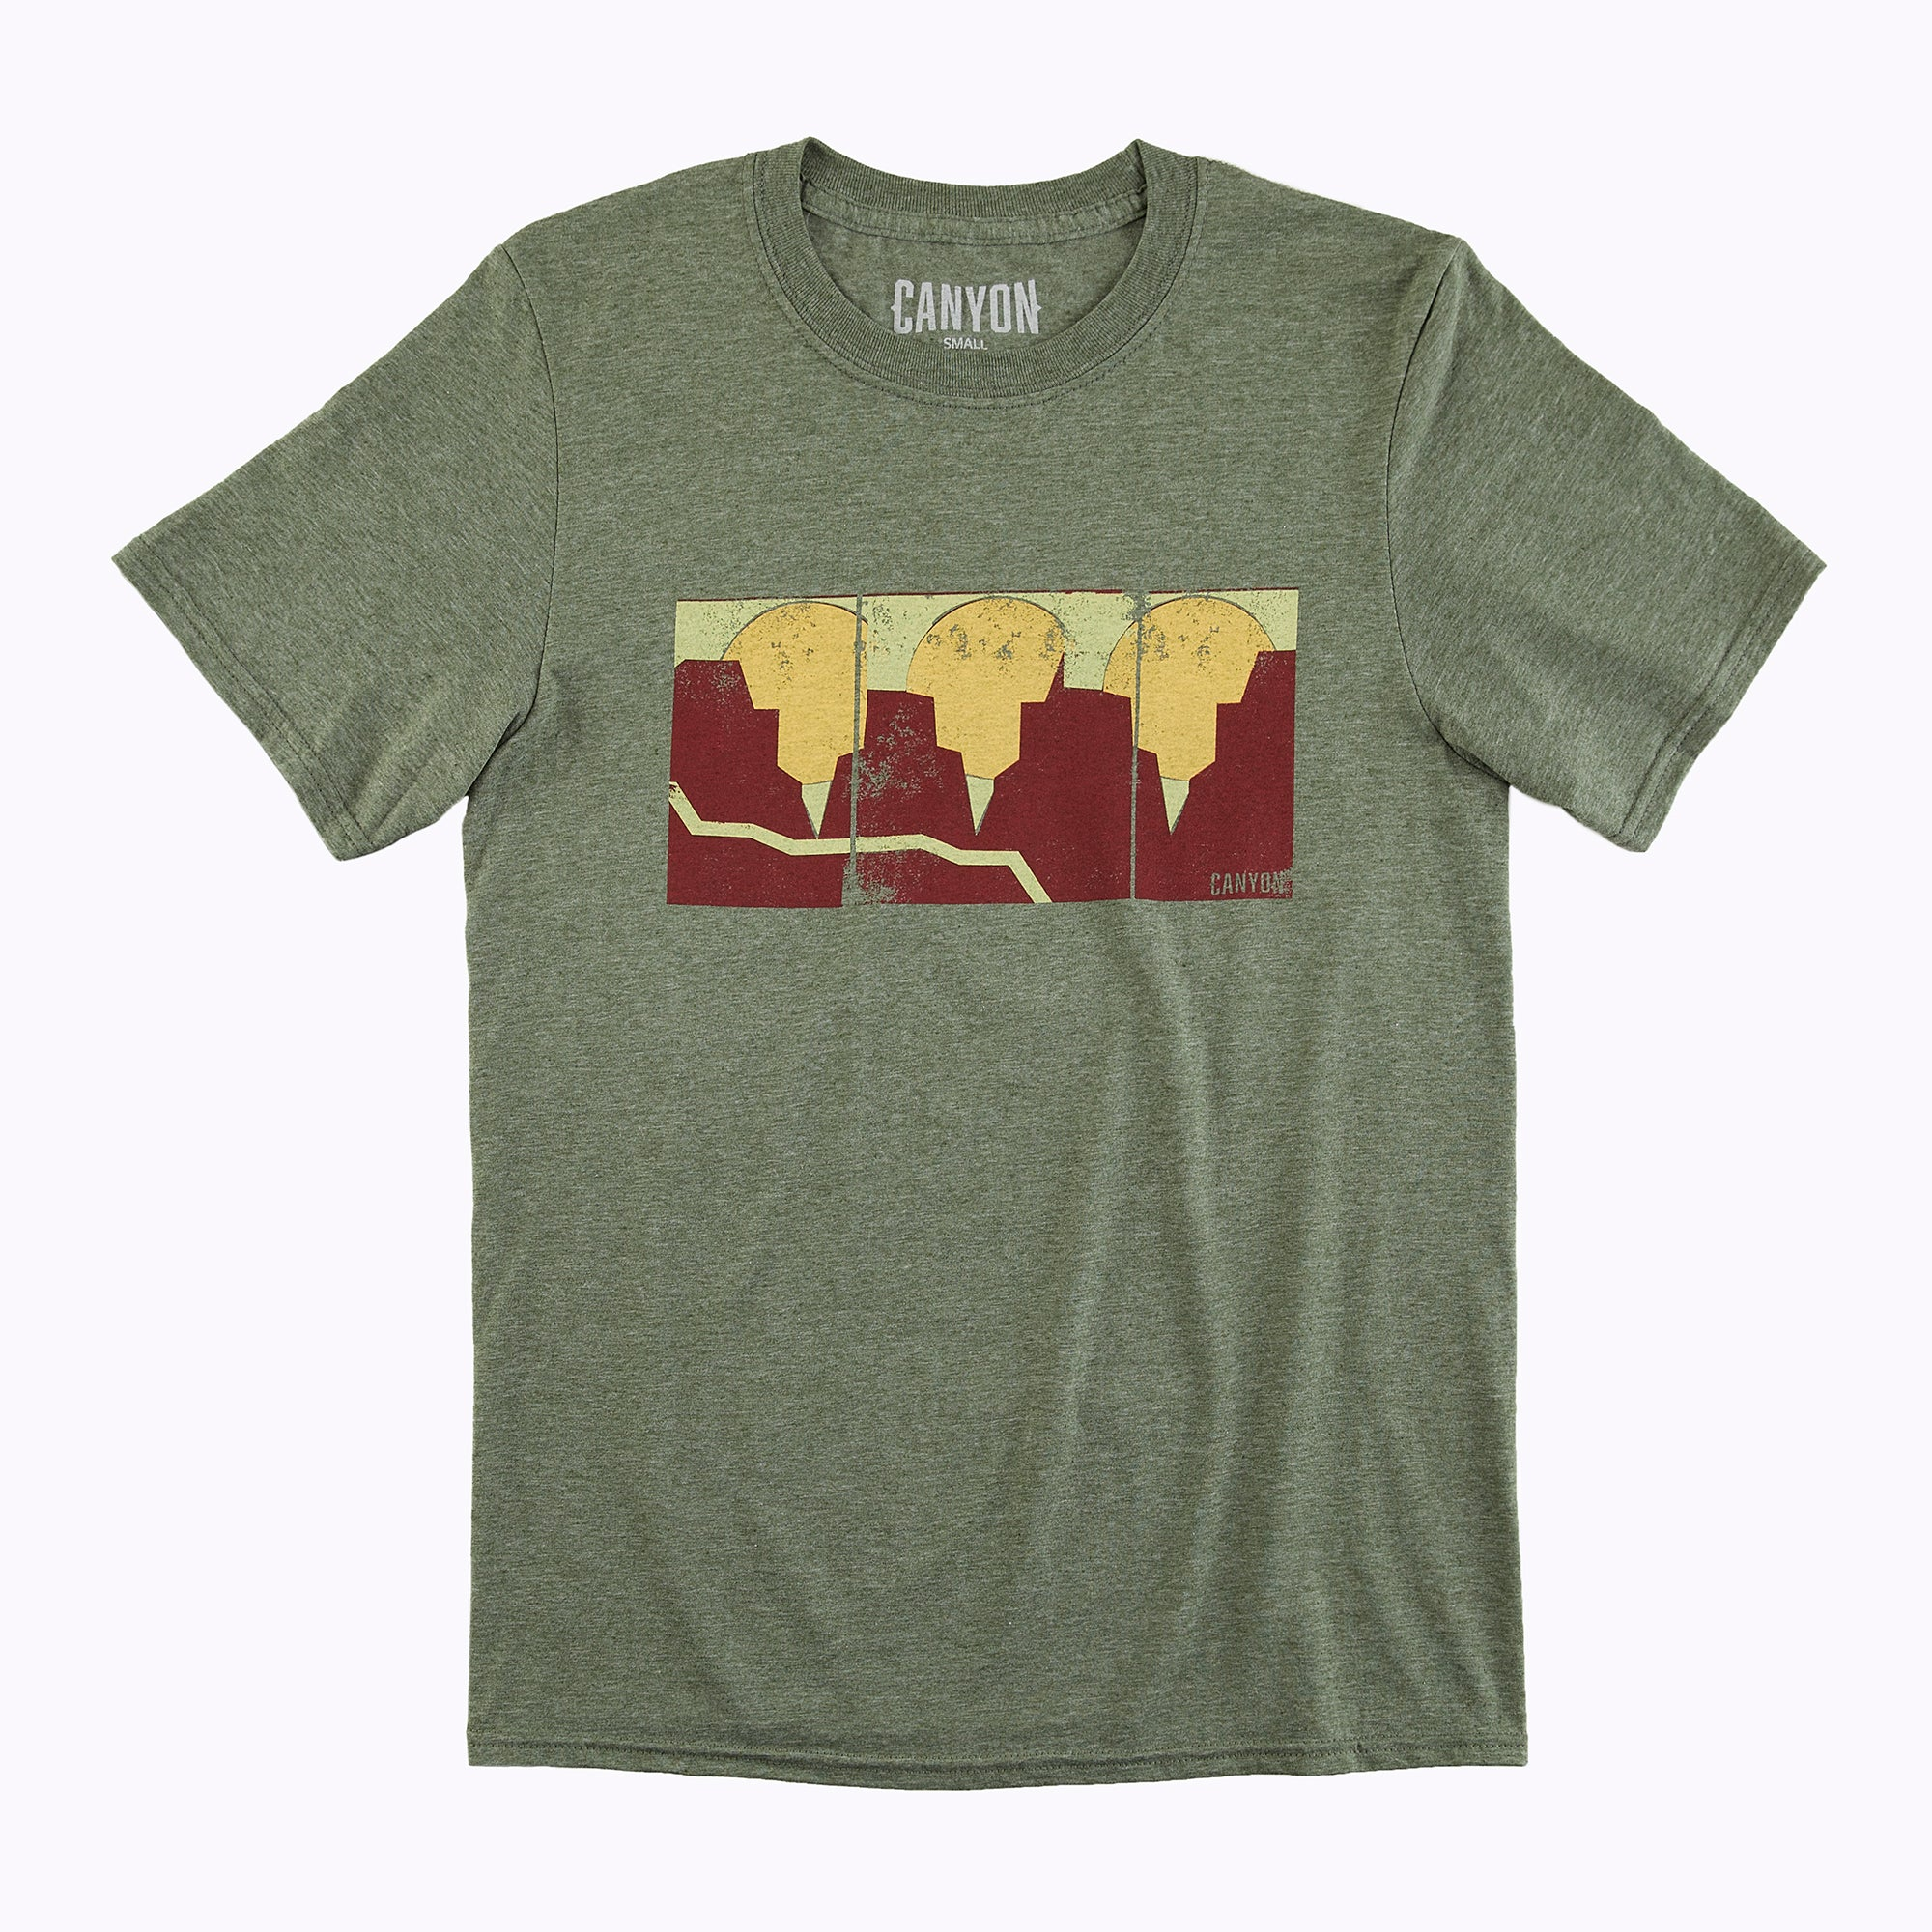 Sundowner Tee Shirt - Small by Canyon Socks